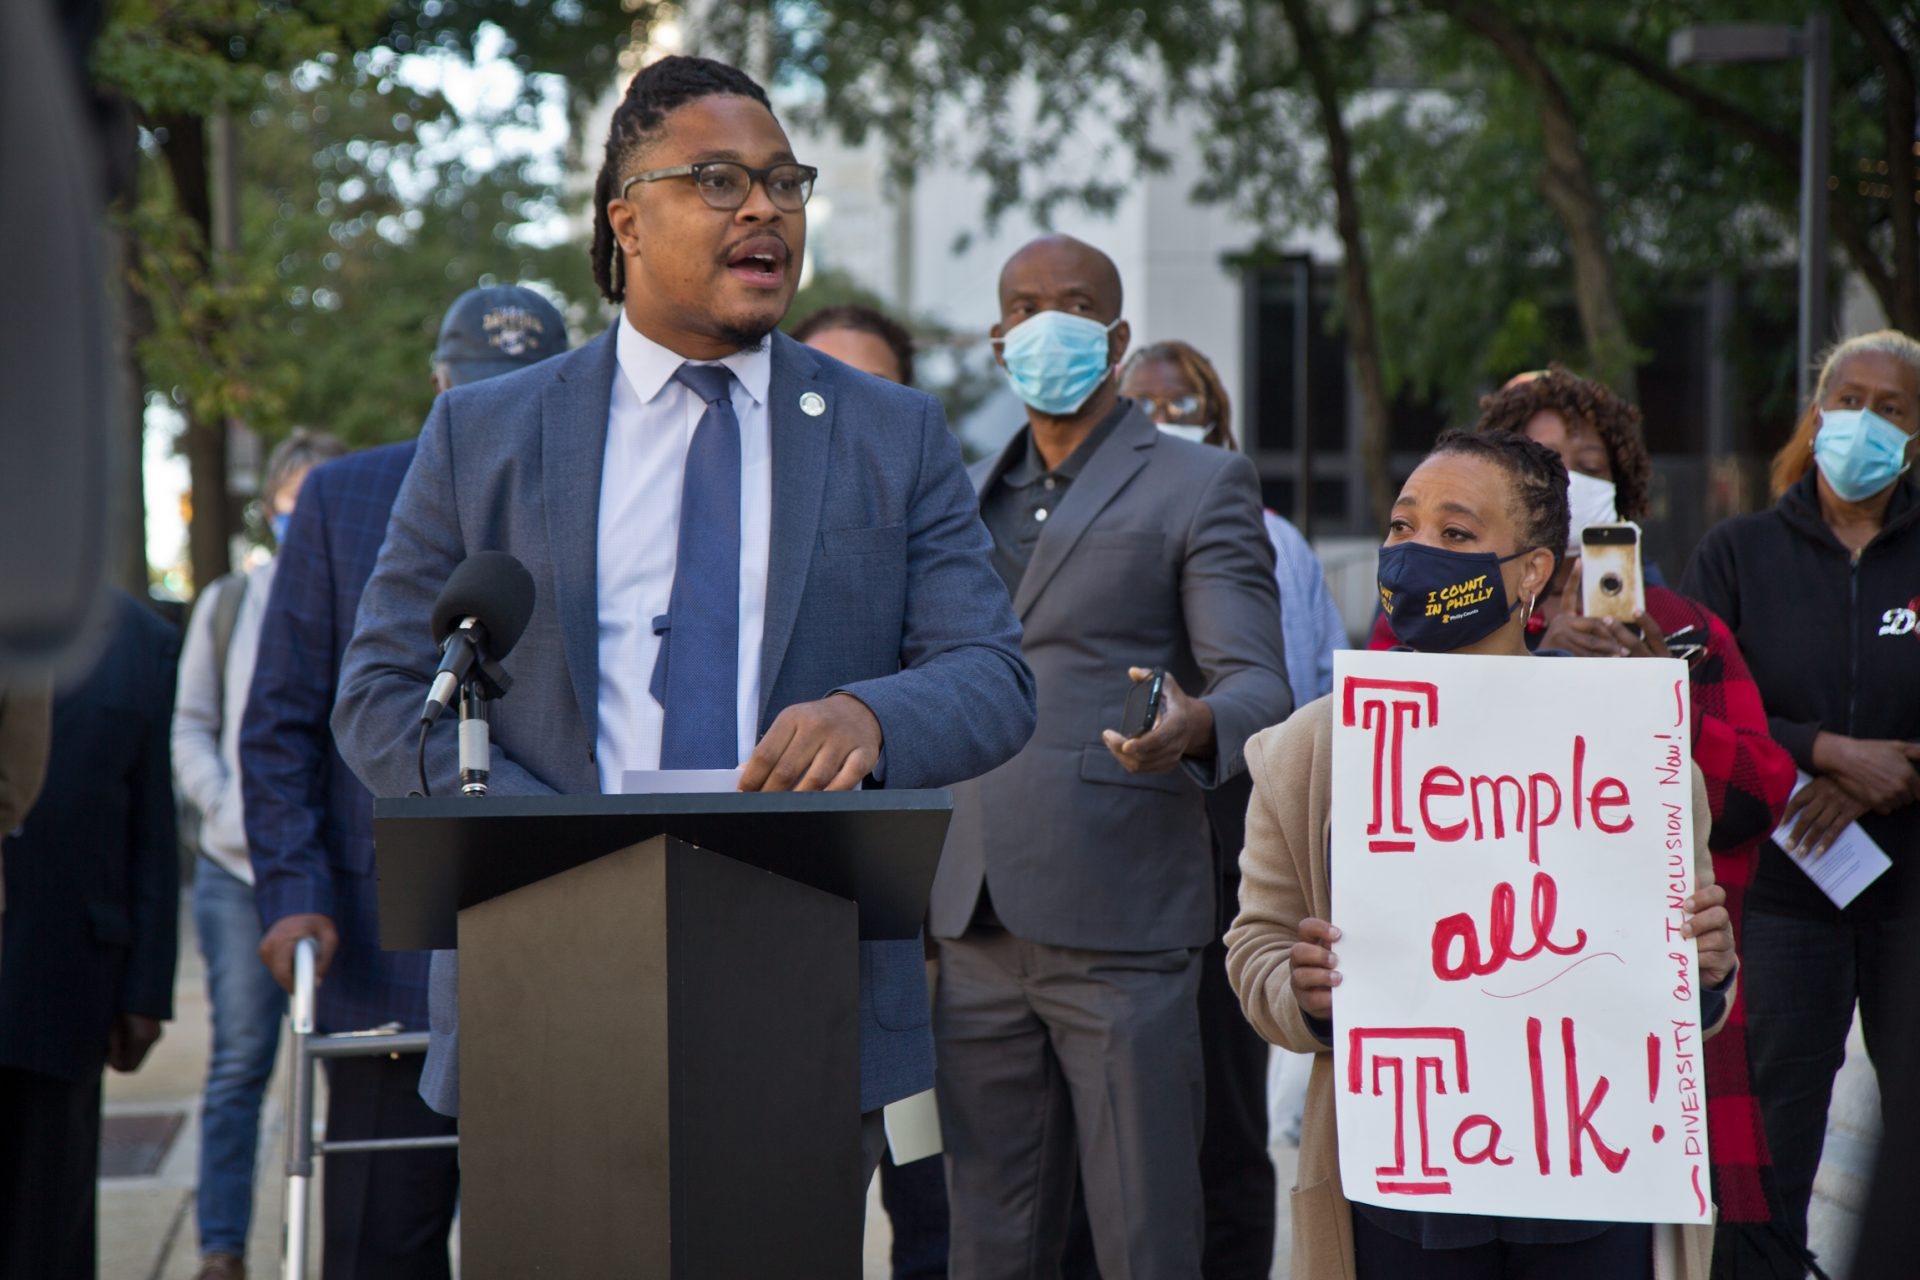 Pa. State Rep. Malcolm Kenyatta led a press conference on the campus of Temple University demand their Board of Trustees for a more inclusive and diverse search committee for a new University President.